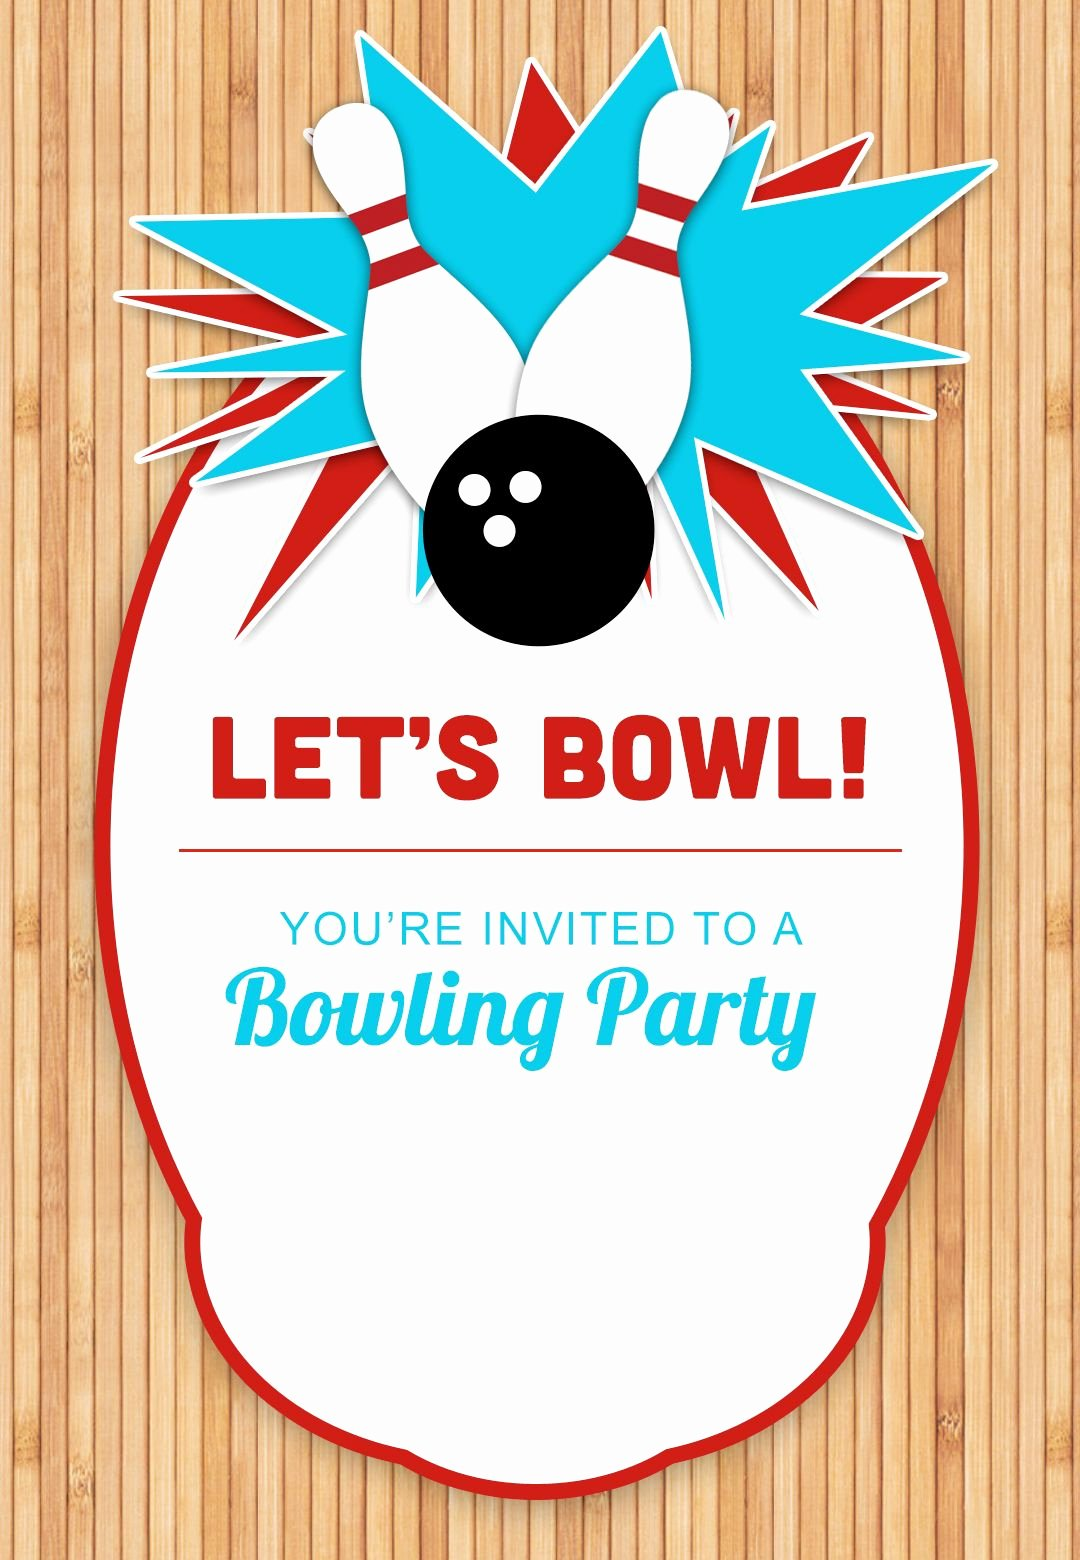 Bowling Party Invite Template Unique Bowling Party Free Printable Birthday Invitation